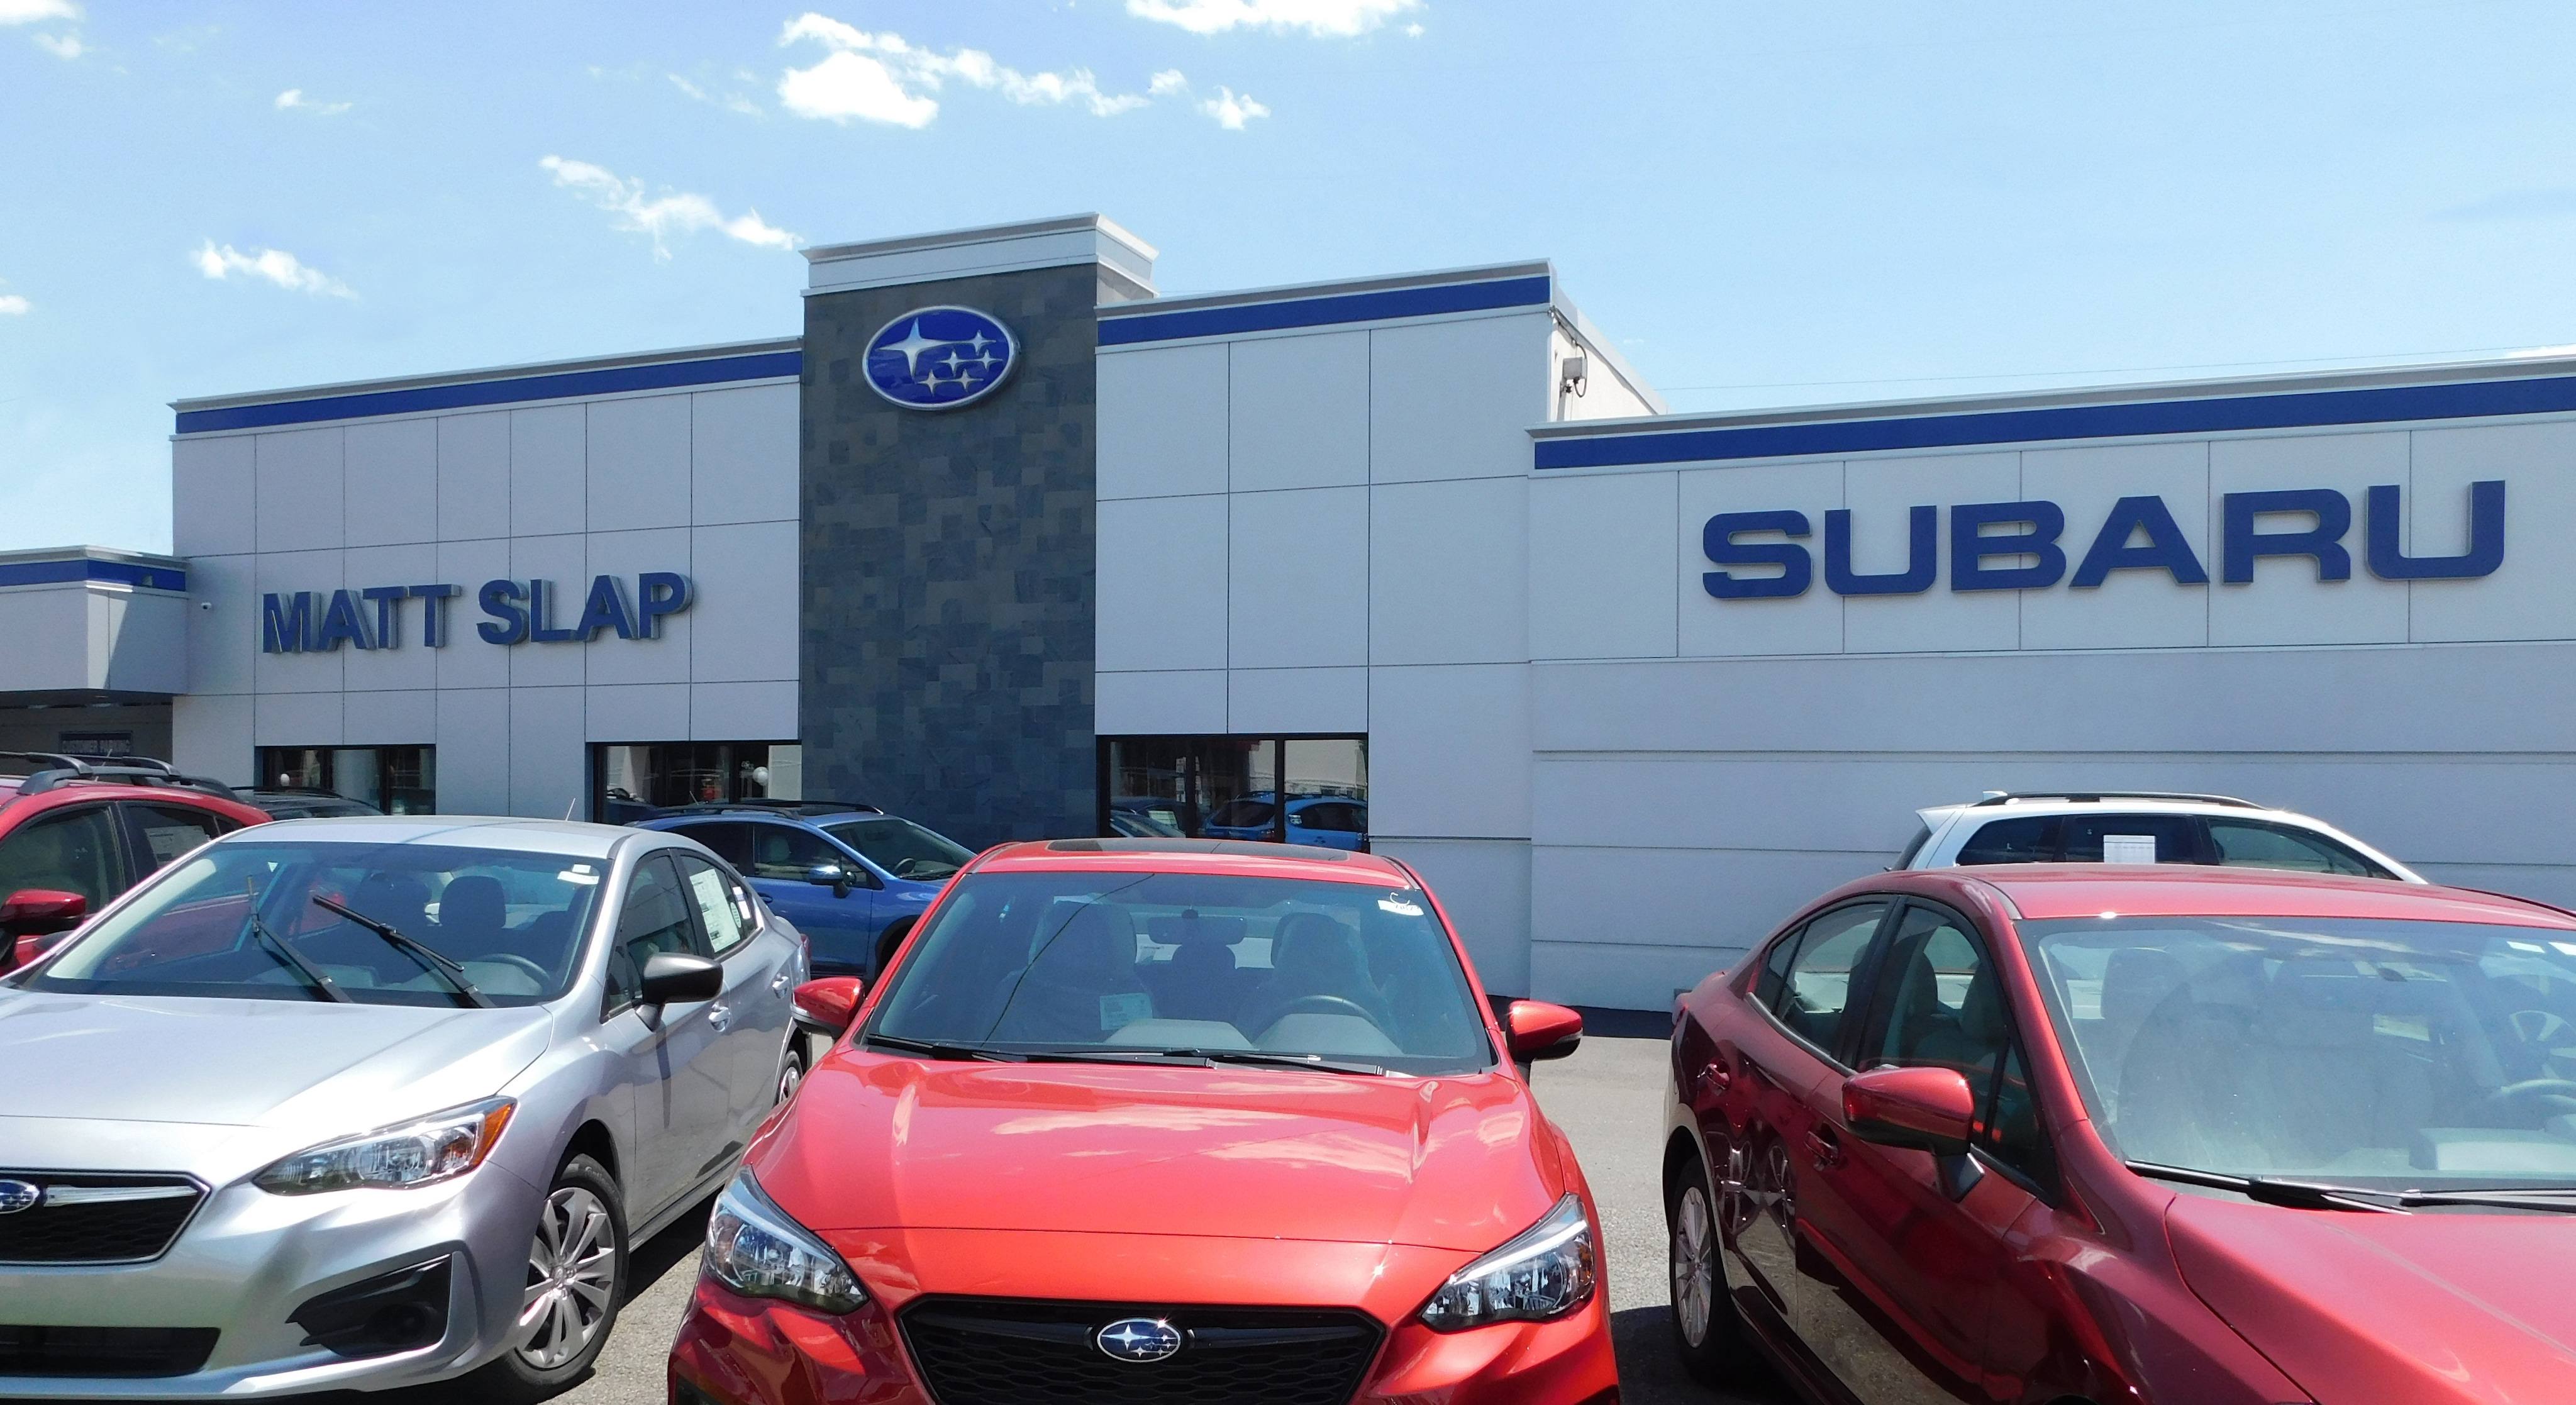 used cars available at matt slap subaru in newark delaware autos post. Black Bedroom Furniture Sets. Home Design Ideas